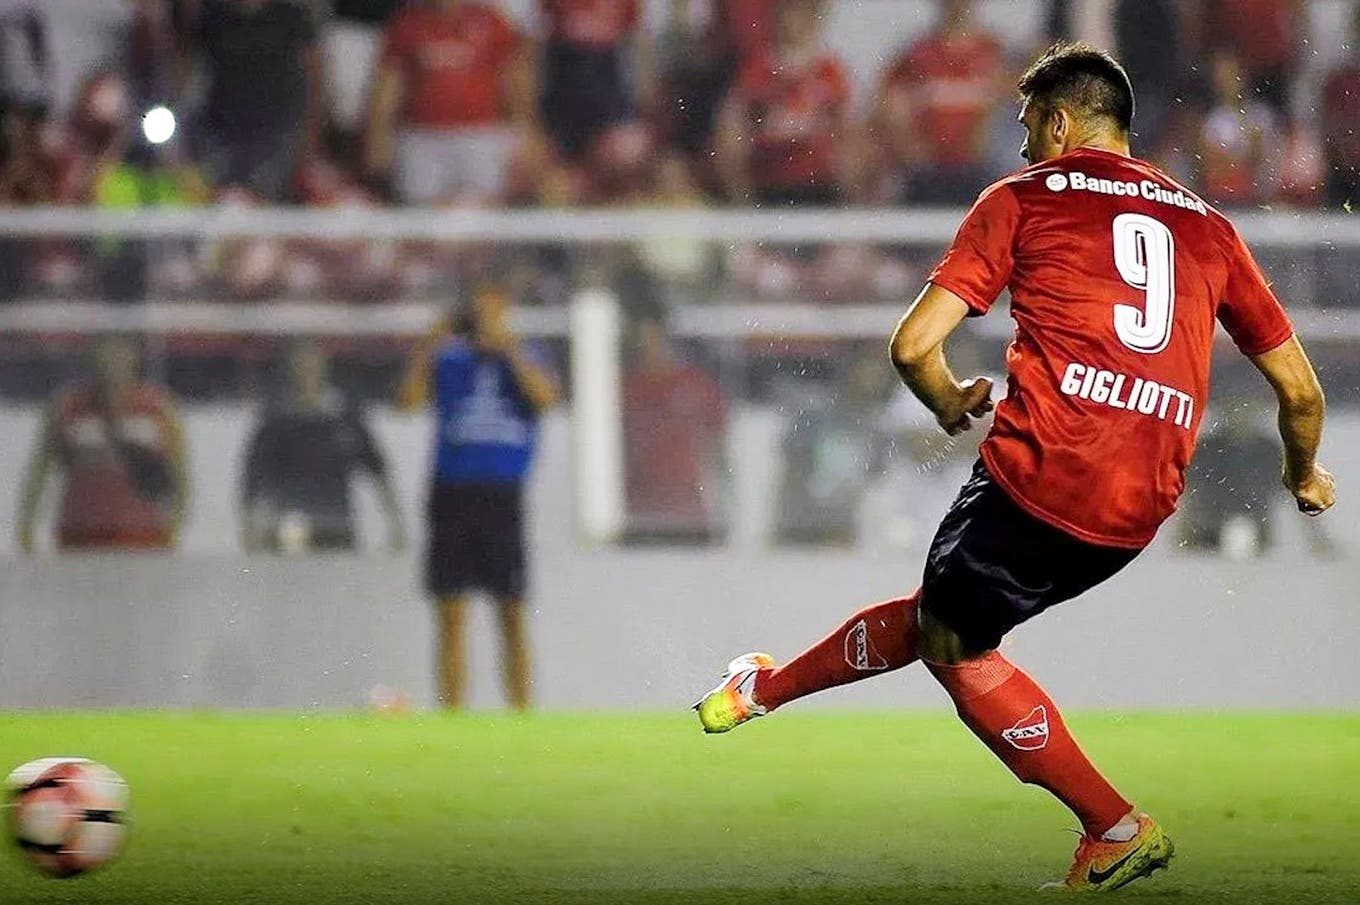 Independiente-Tigre, Superliga: horario, TV y formaciones